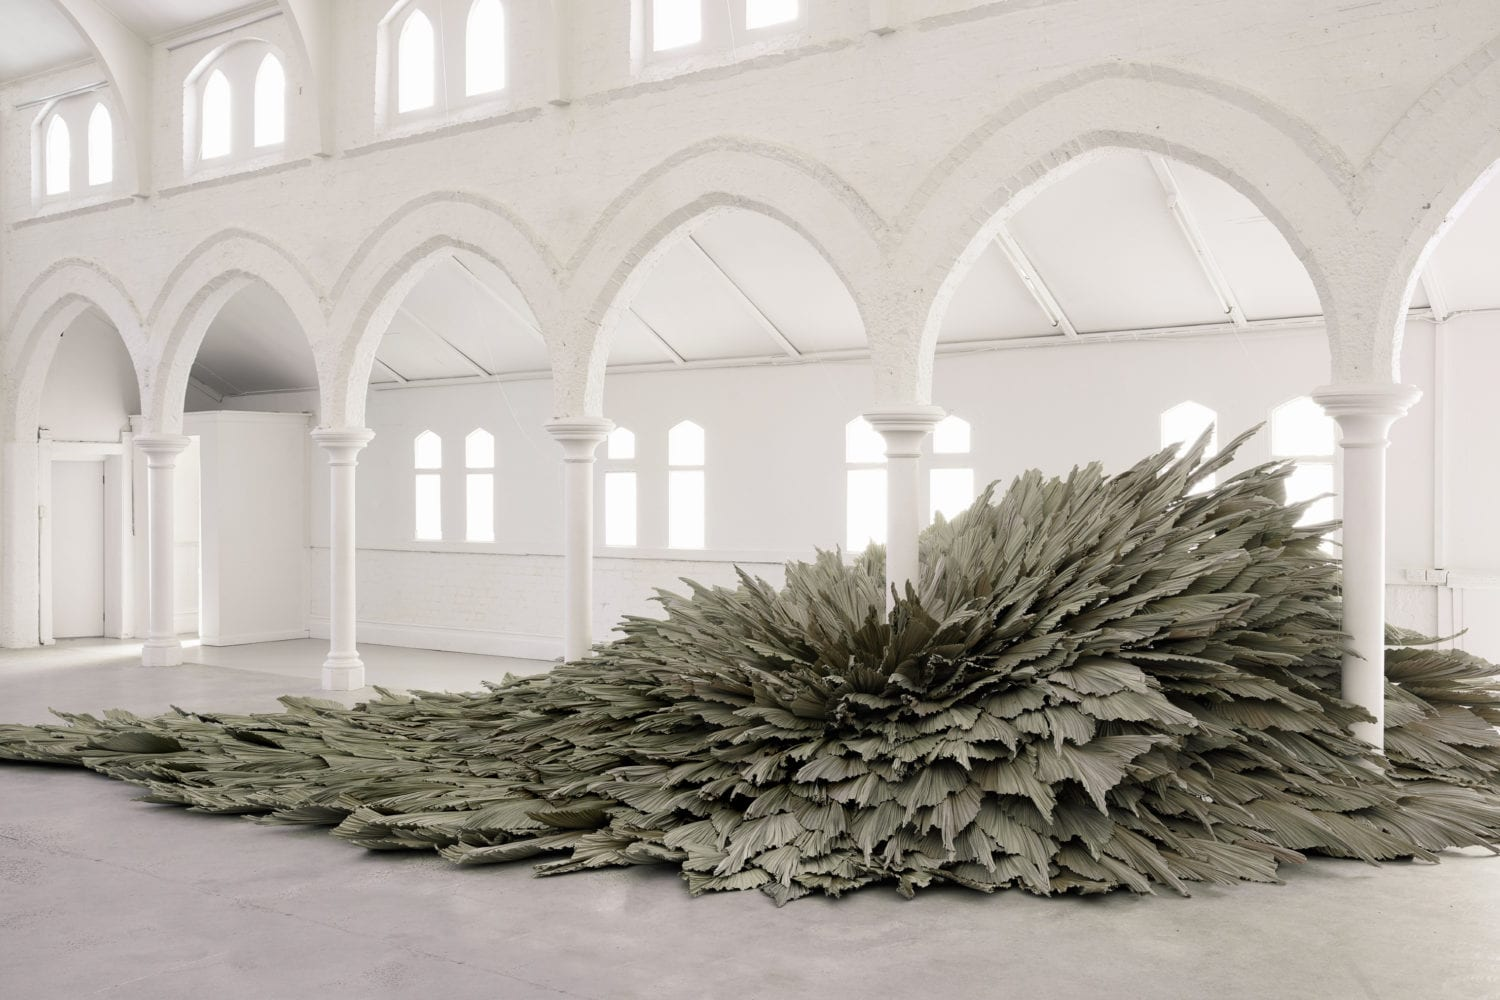 Proximity Botanical Installation By Wona Bae And Charlie Lawler Of Loose Leaf Yellowtrace 03